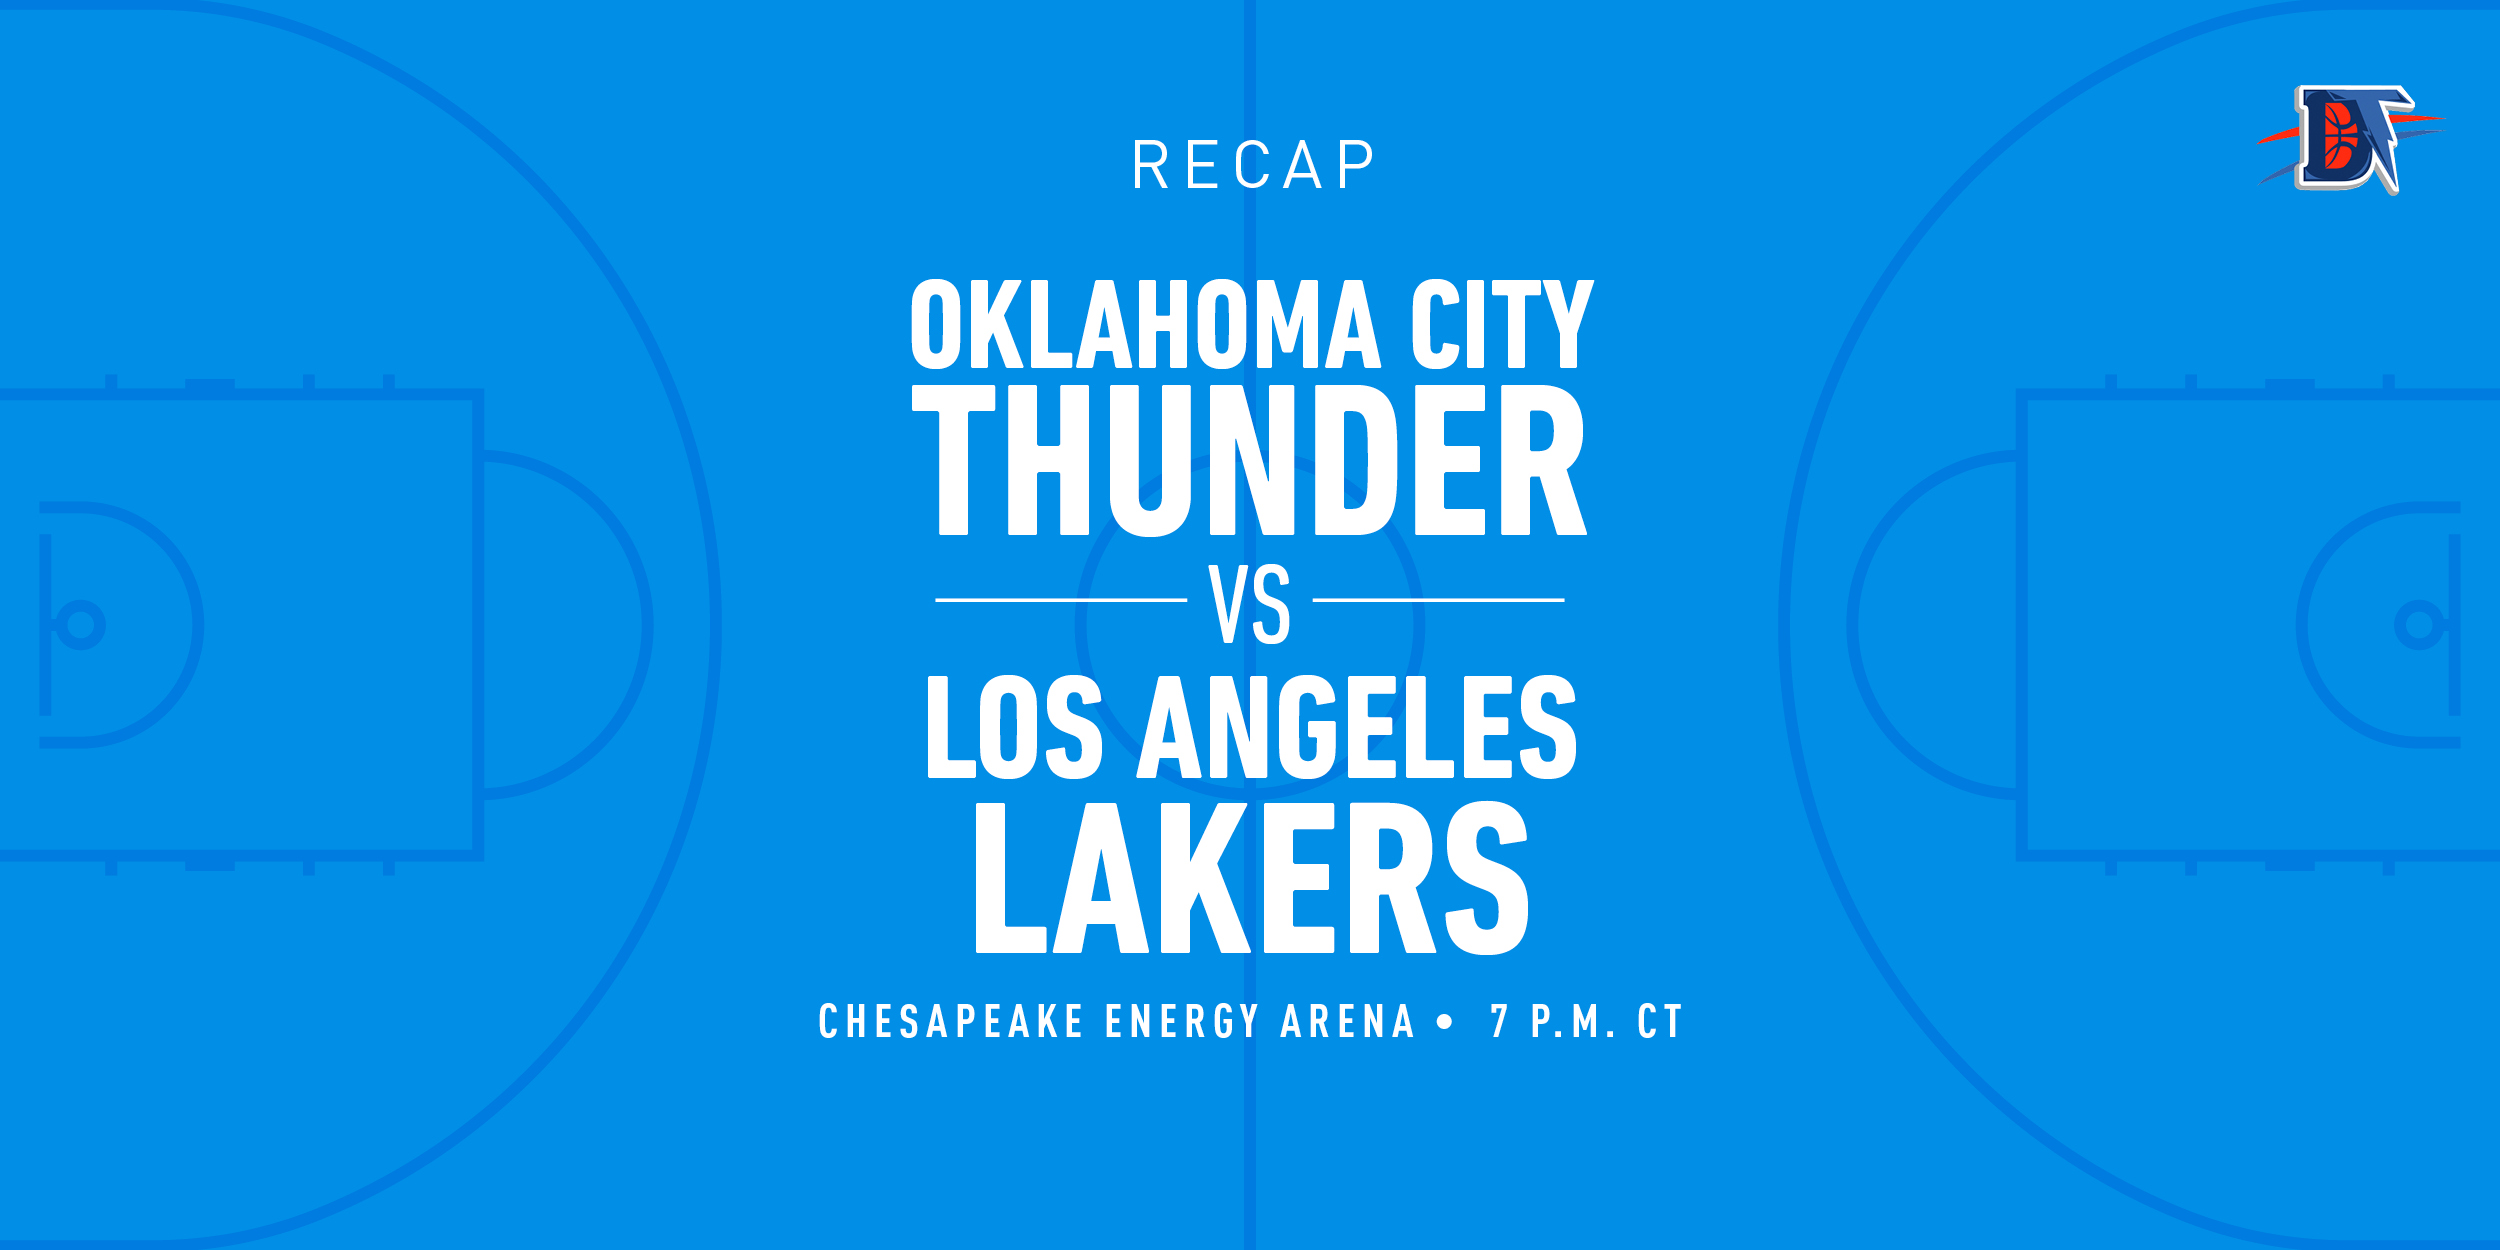 Game 11 Rapid Recap: Lakers (10-3) def. Thunder (5-6) 128-99